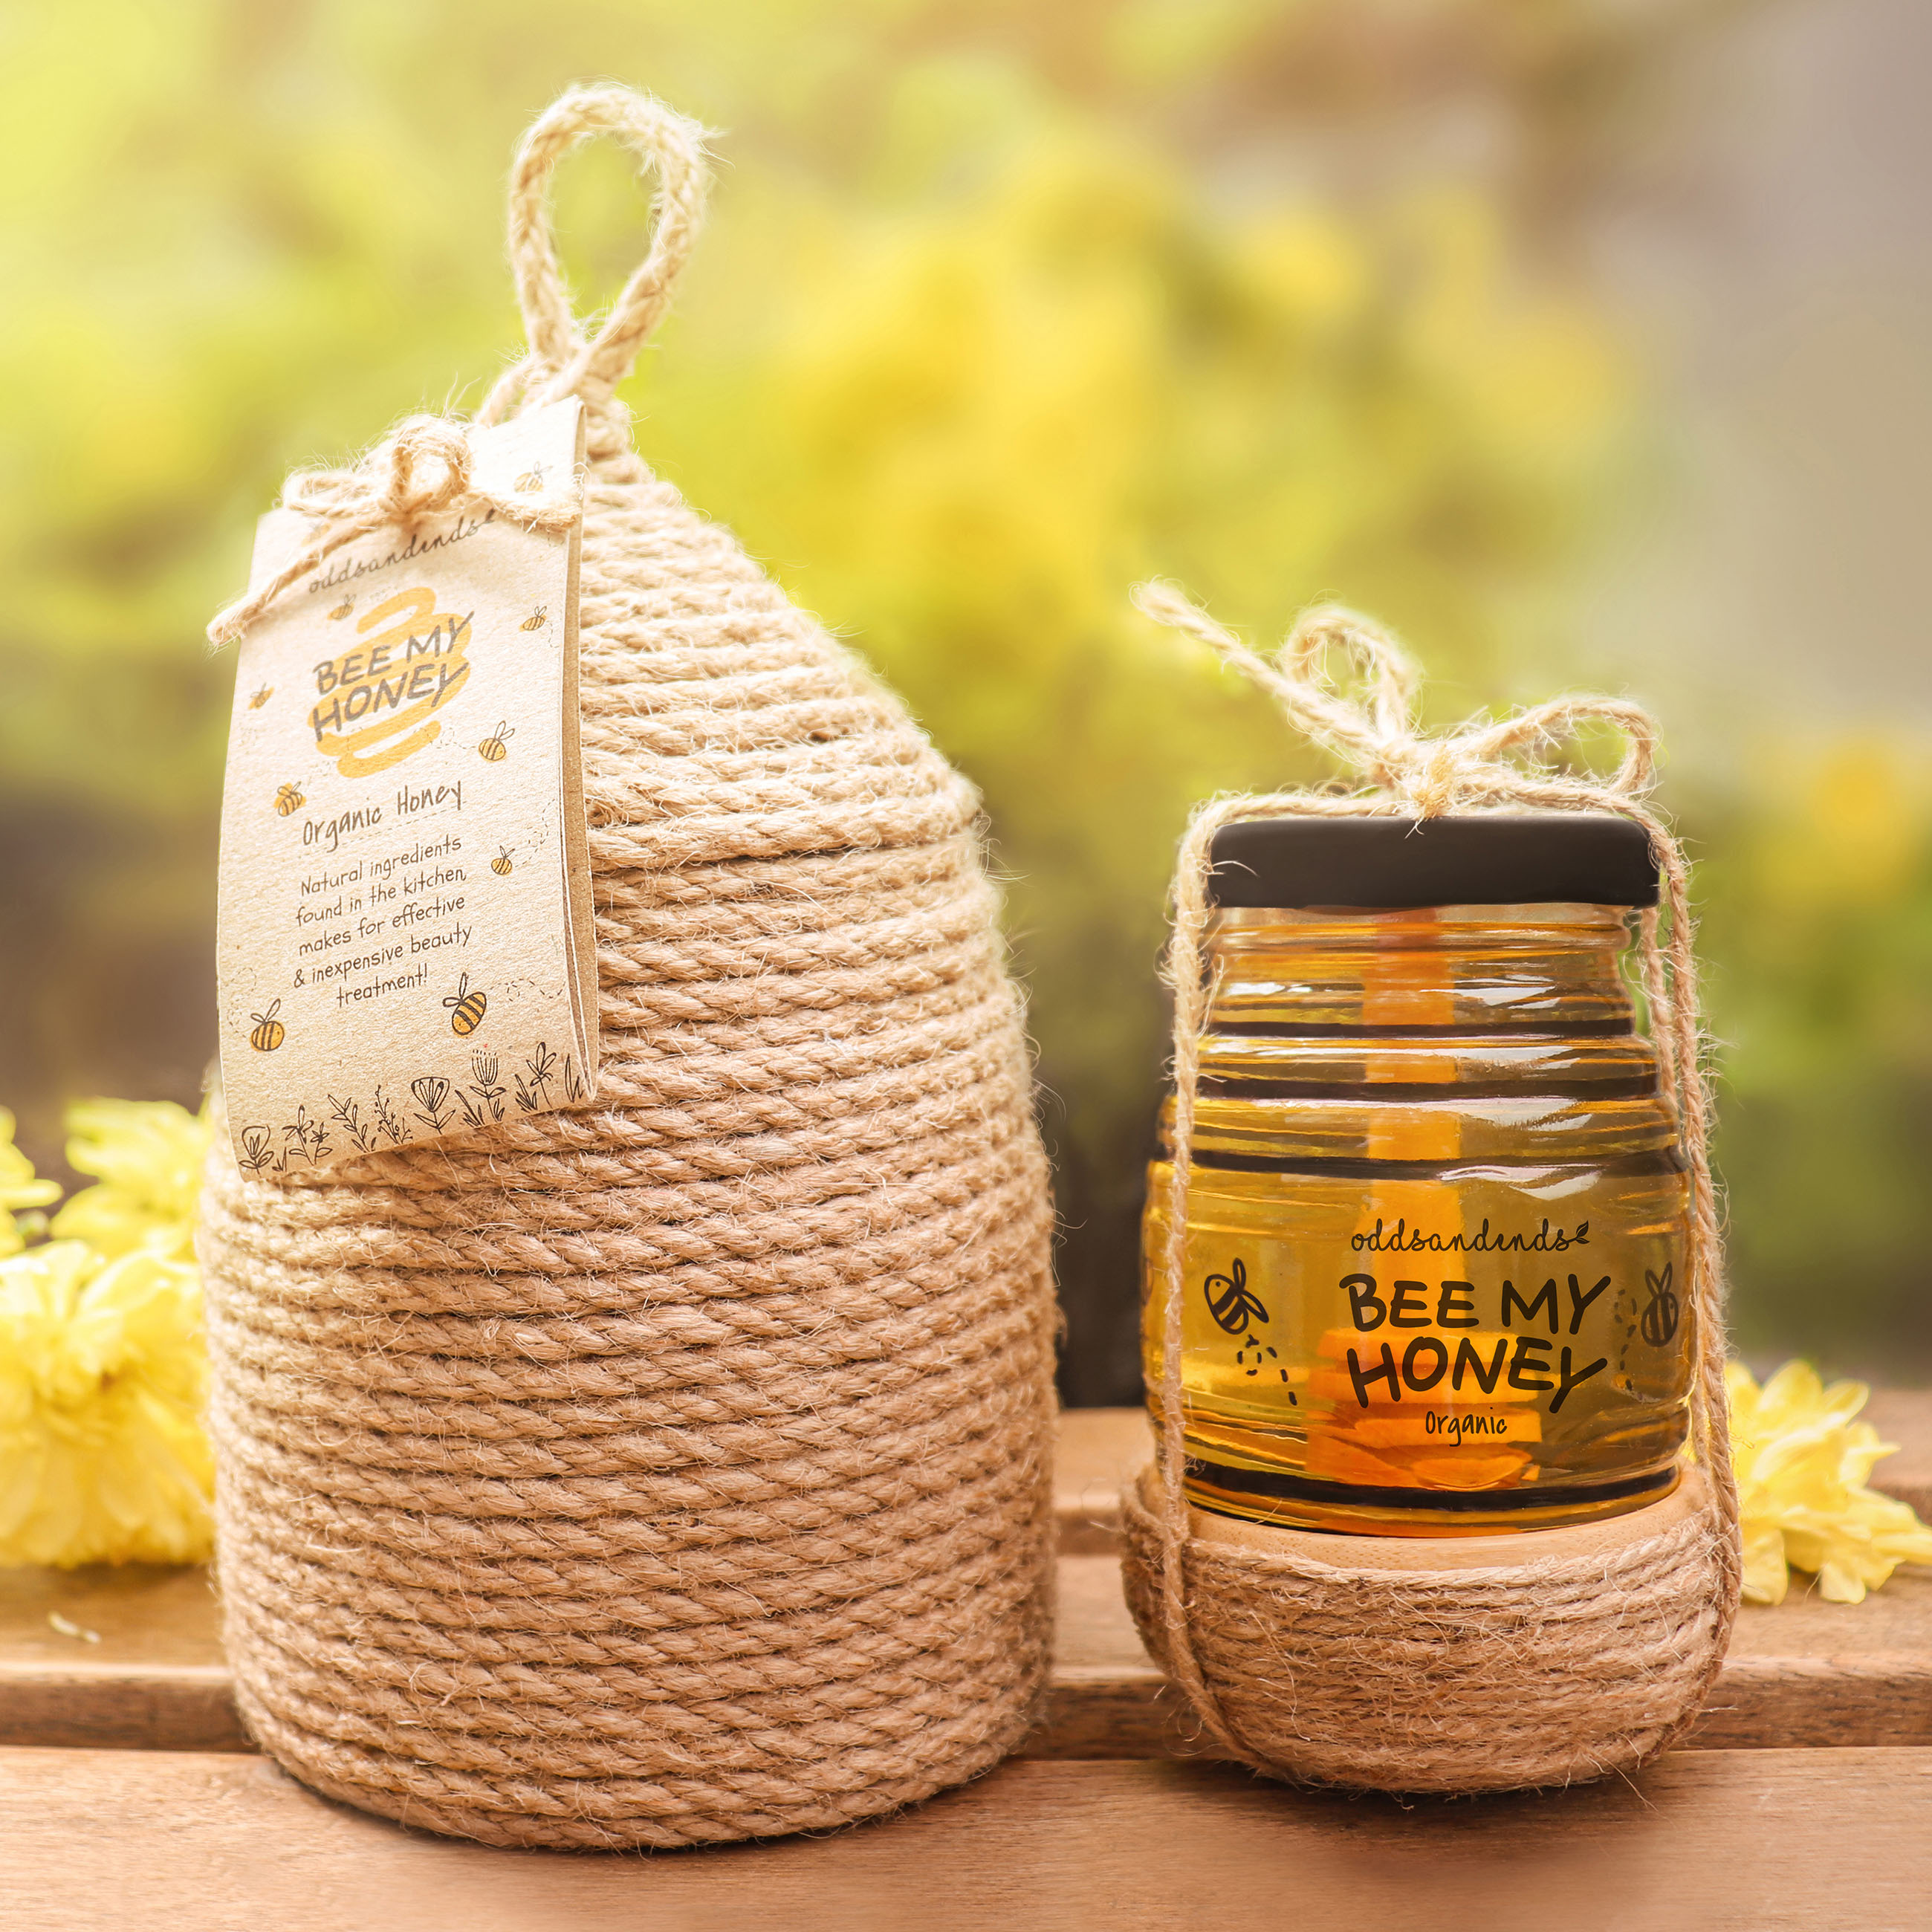 Lang Wei Jin Student Packaging Design Concept for Bee My Honey